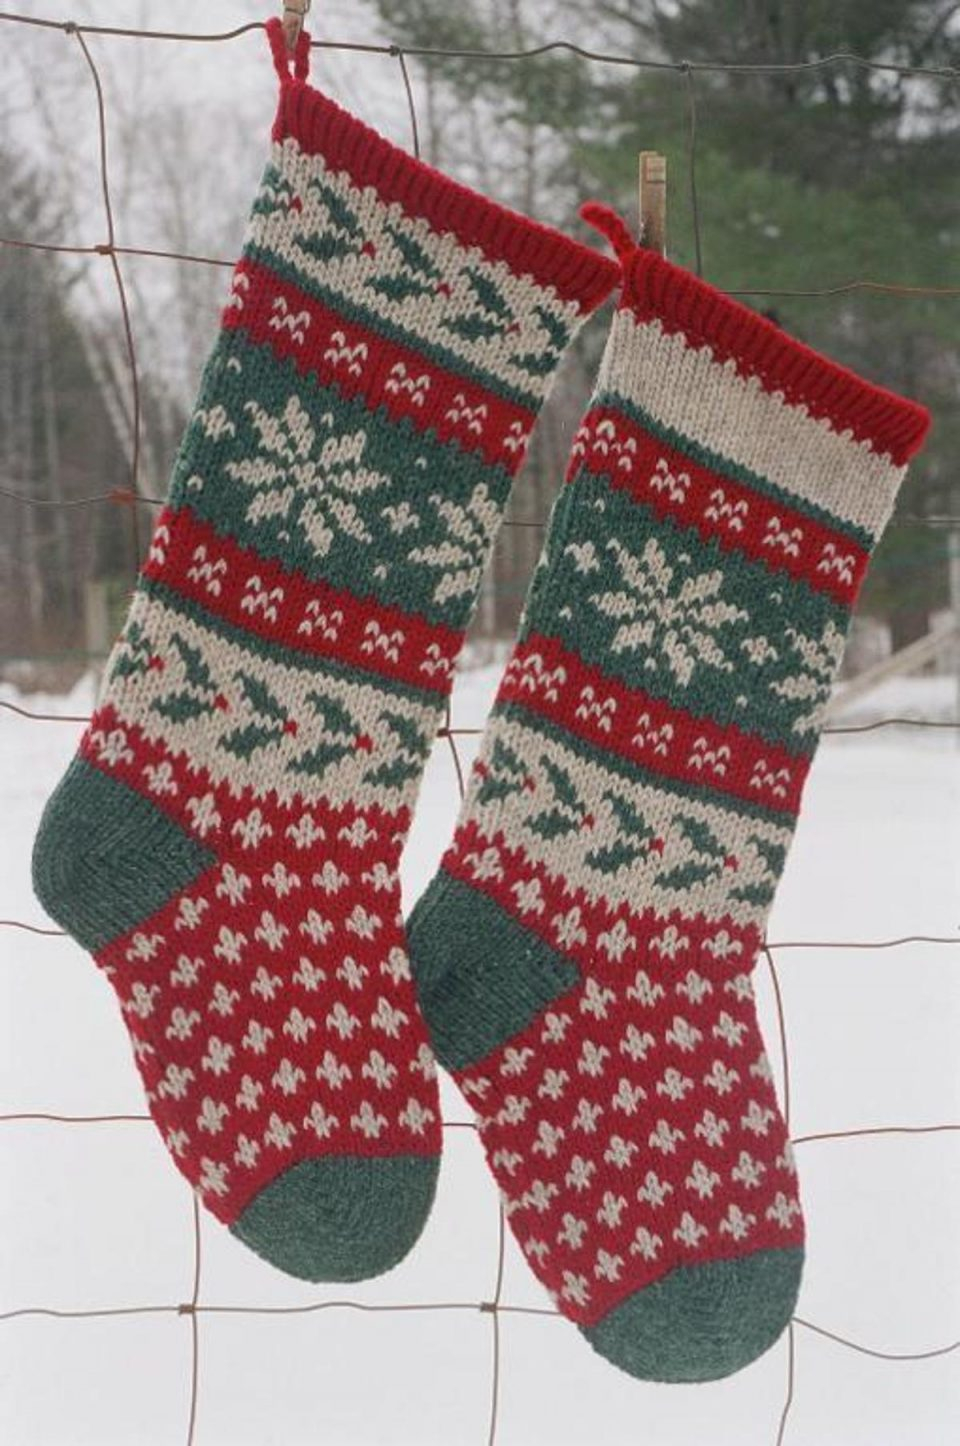 Crochet Stocking Pattern  Knitted Christmas Stocking Patterns For Real Feel Decorations Holly